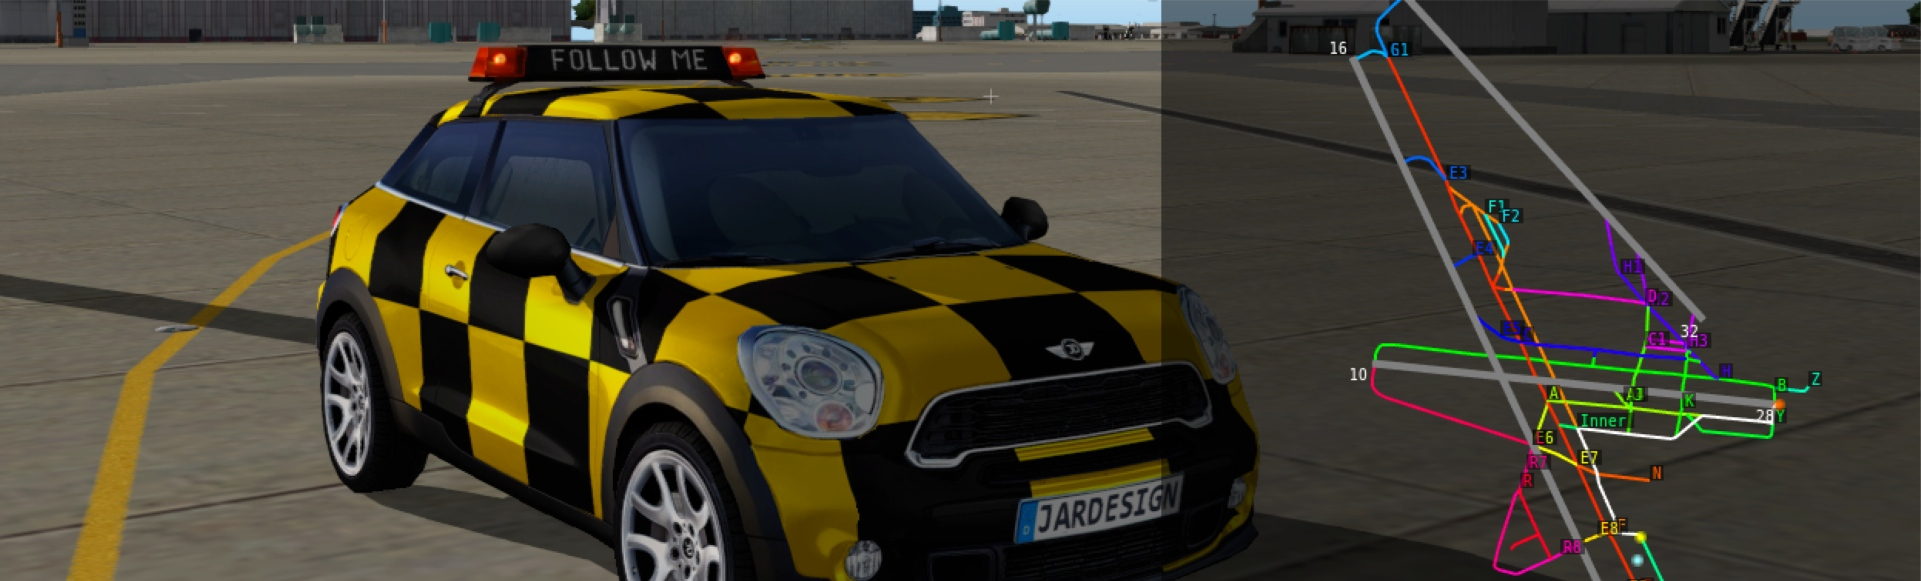 FollowMe Car for X-Plane 10